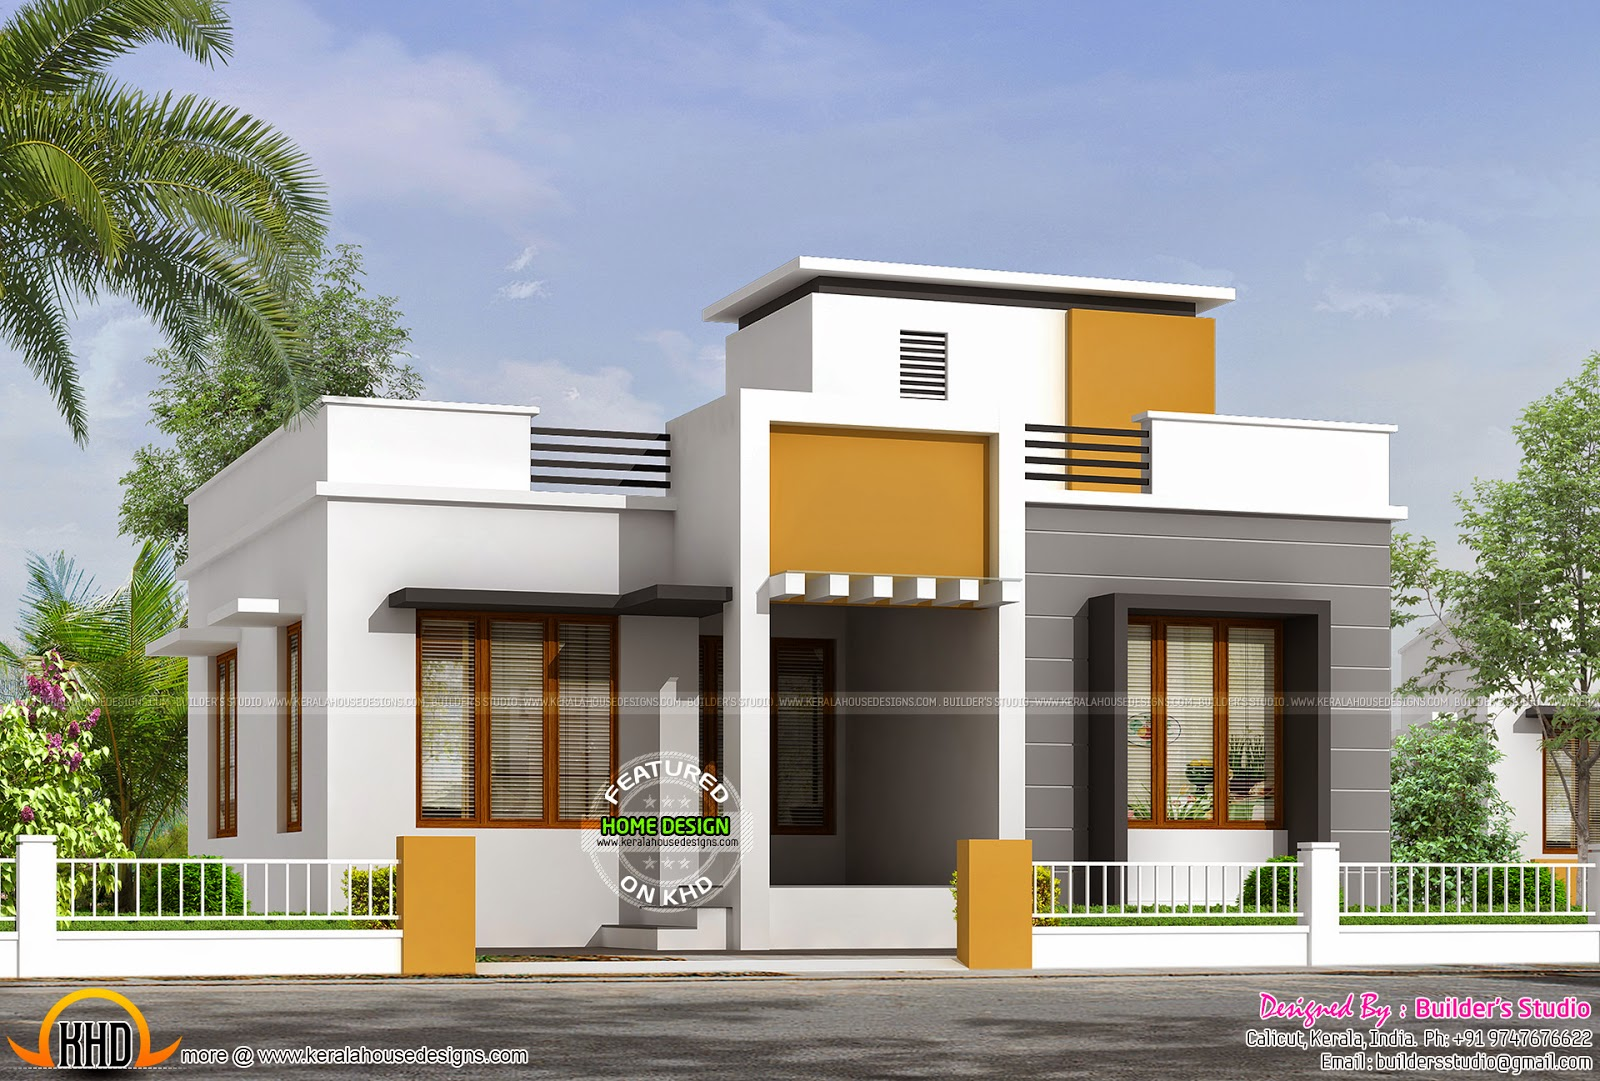 850 sq ft flat roof one floor home kerala home design and floor plans One floor house plans